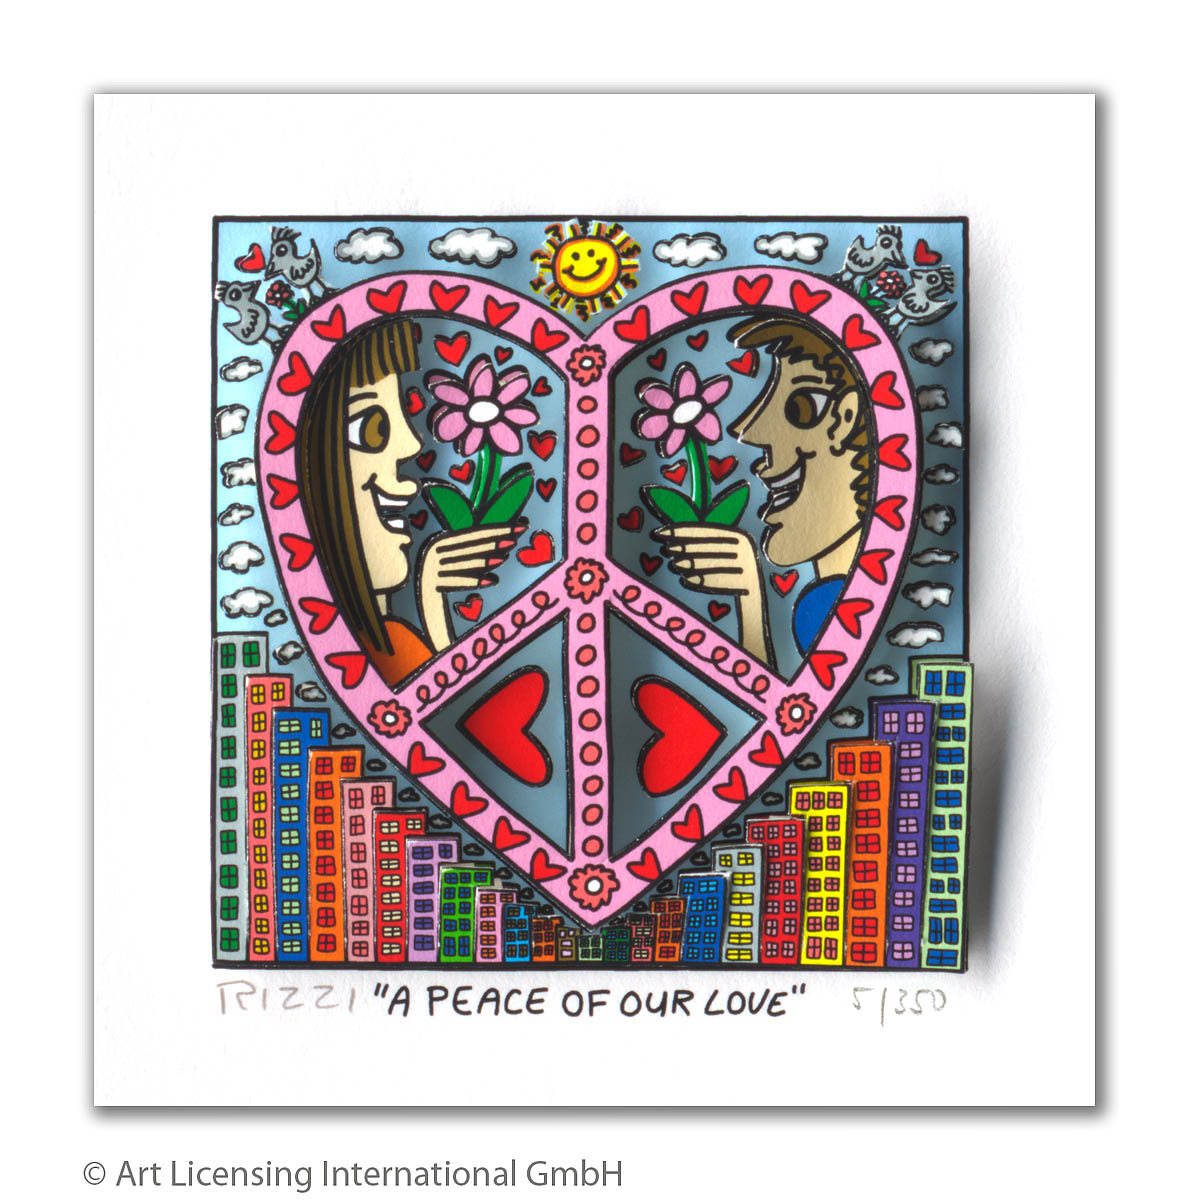 James Rizzi A Peace of our Love